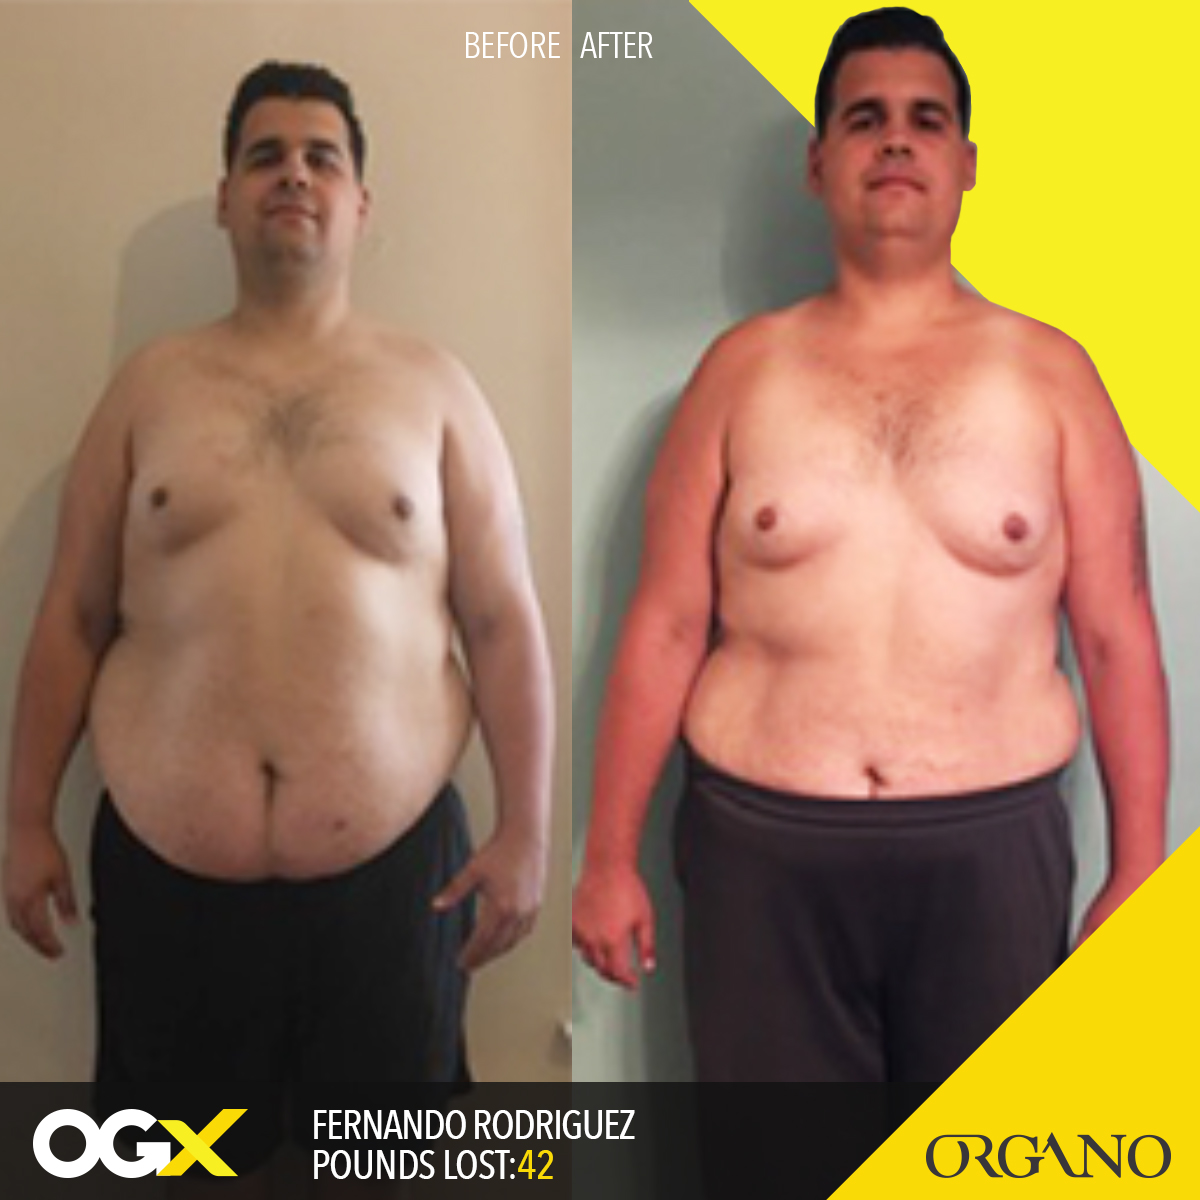 before_after_FernandoRodriguez